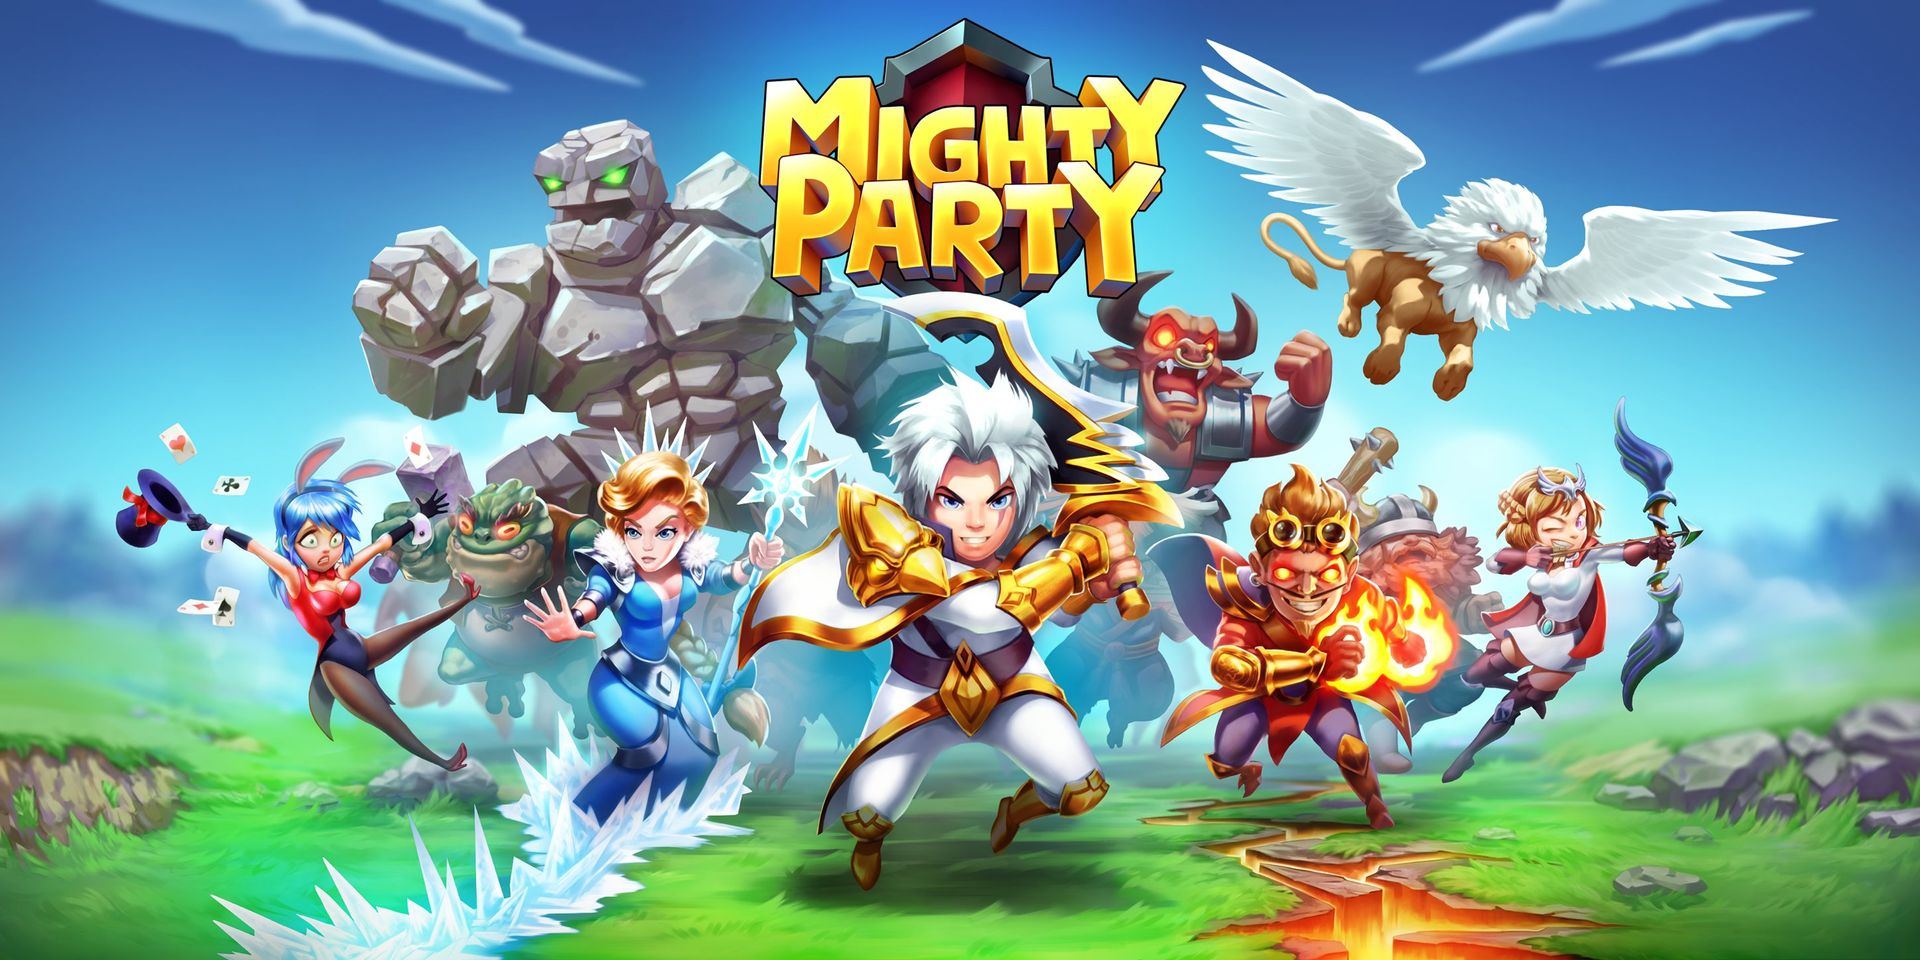 mighty party featured image